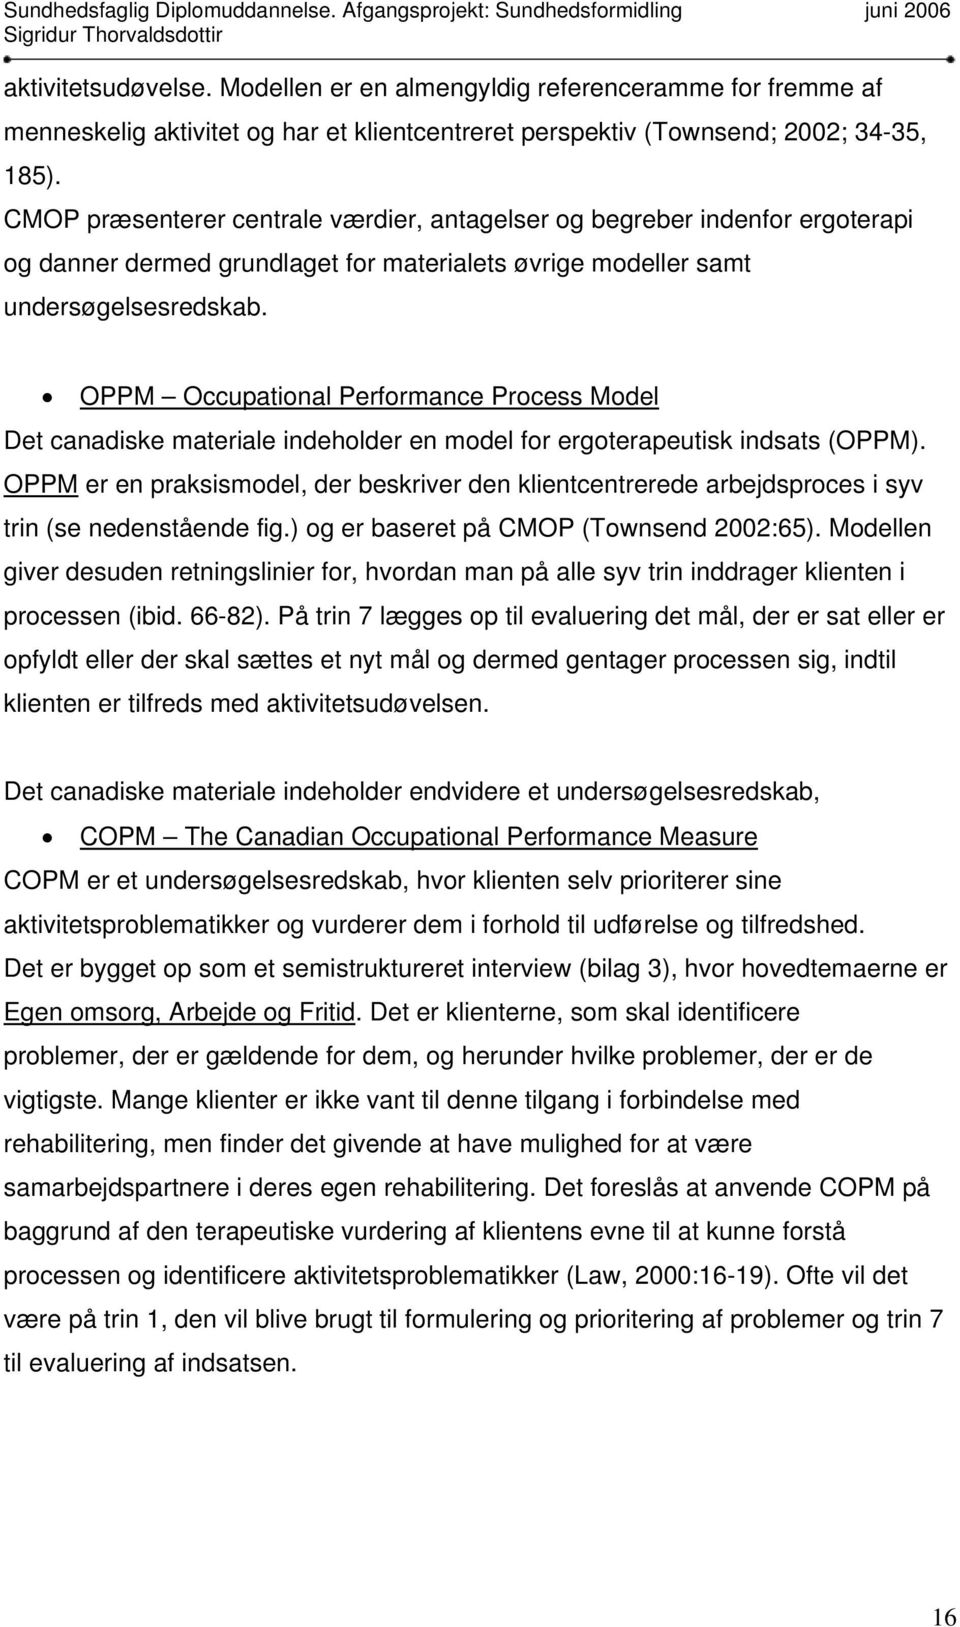 OPPM Occupational Performance Process Model Det canadiske materiale indeholder en model for ergoterapeutisk indsats (OPPM).